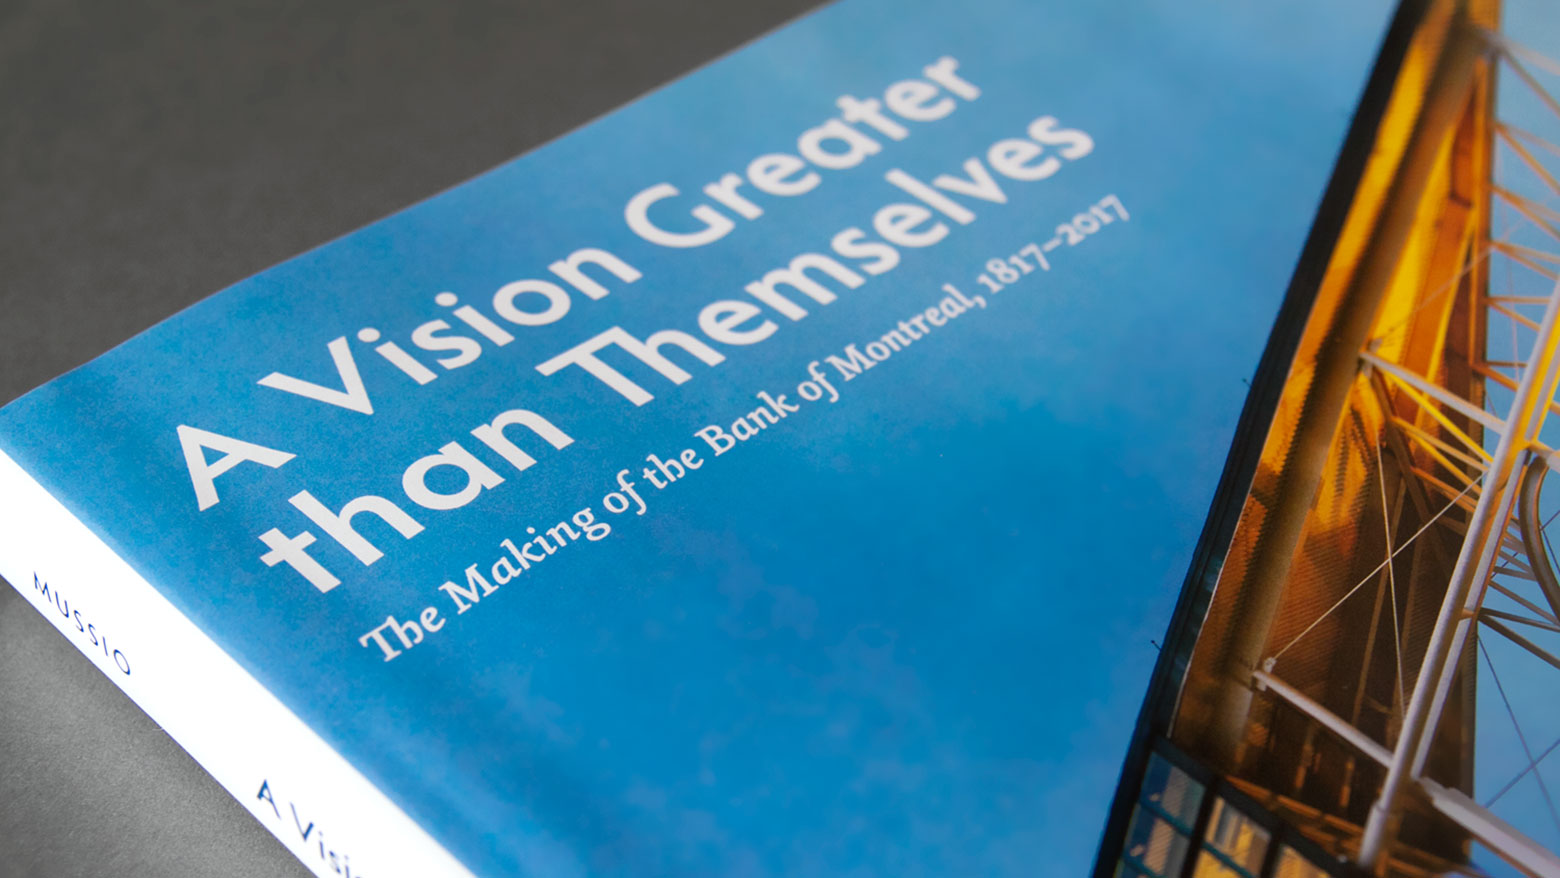 Close-up picture of the book cover